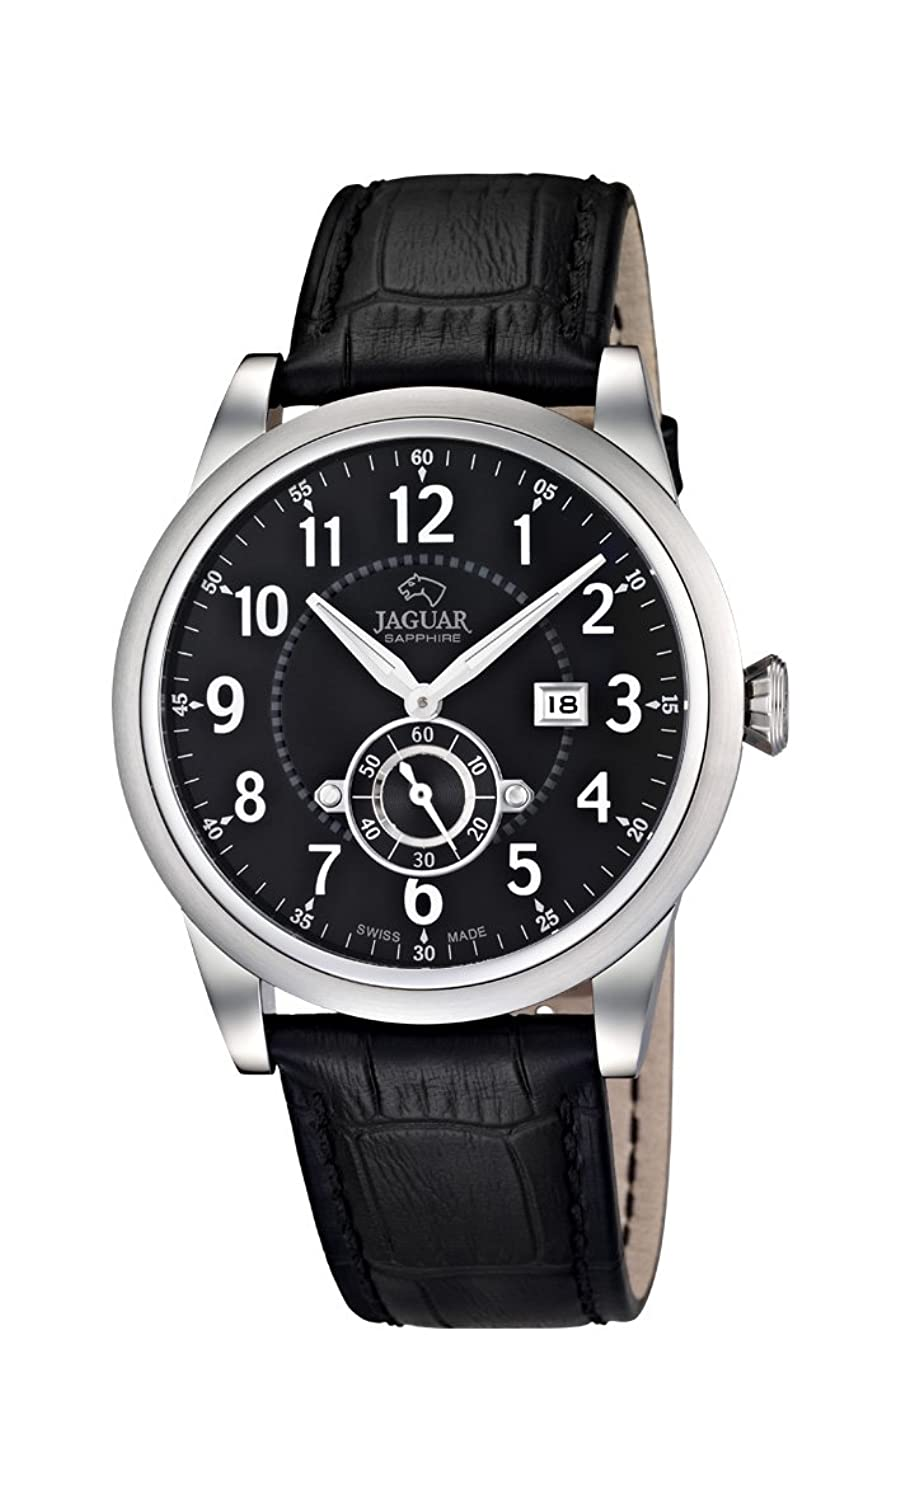 Jaguar Watches Herren-Armbanduhr XL Analog Quarz Leder J662-4